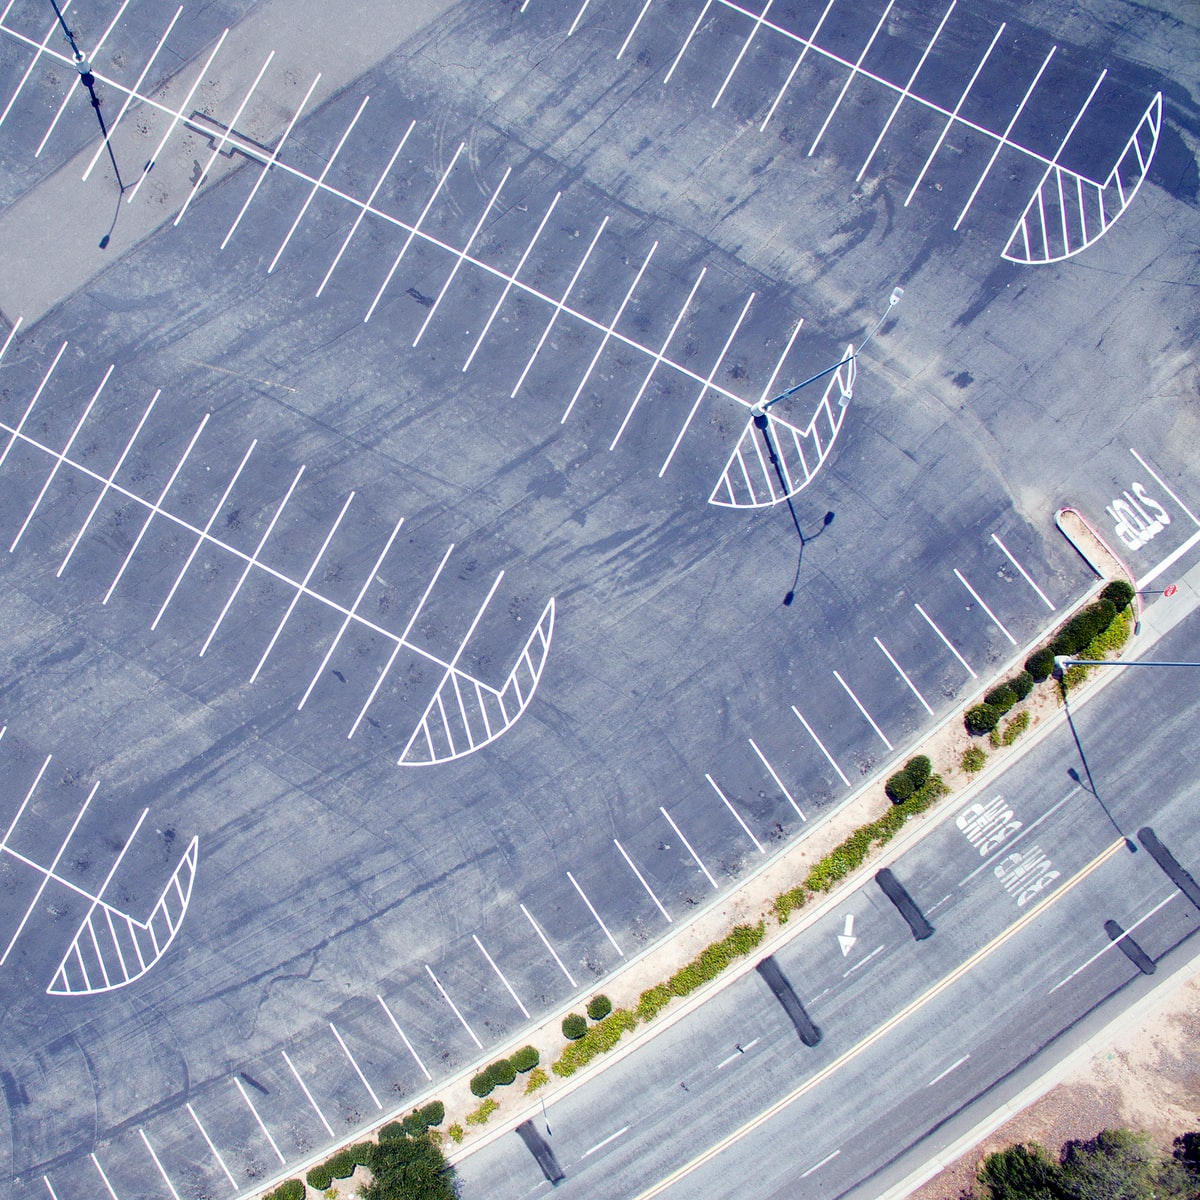 Drone over parking lot.